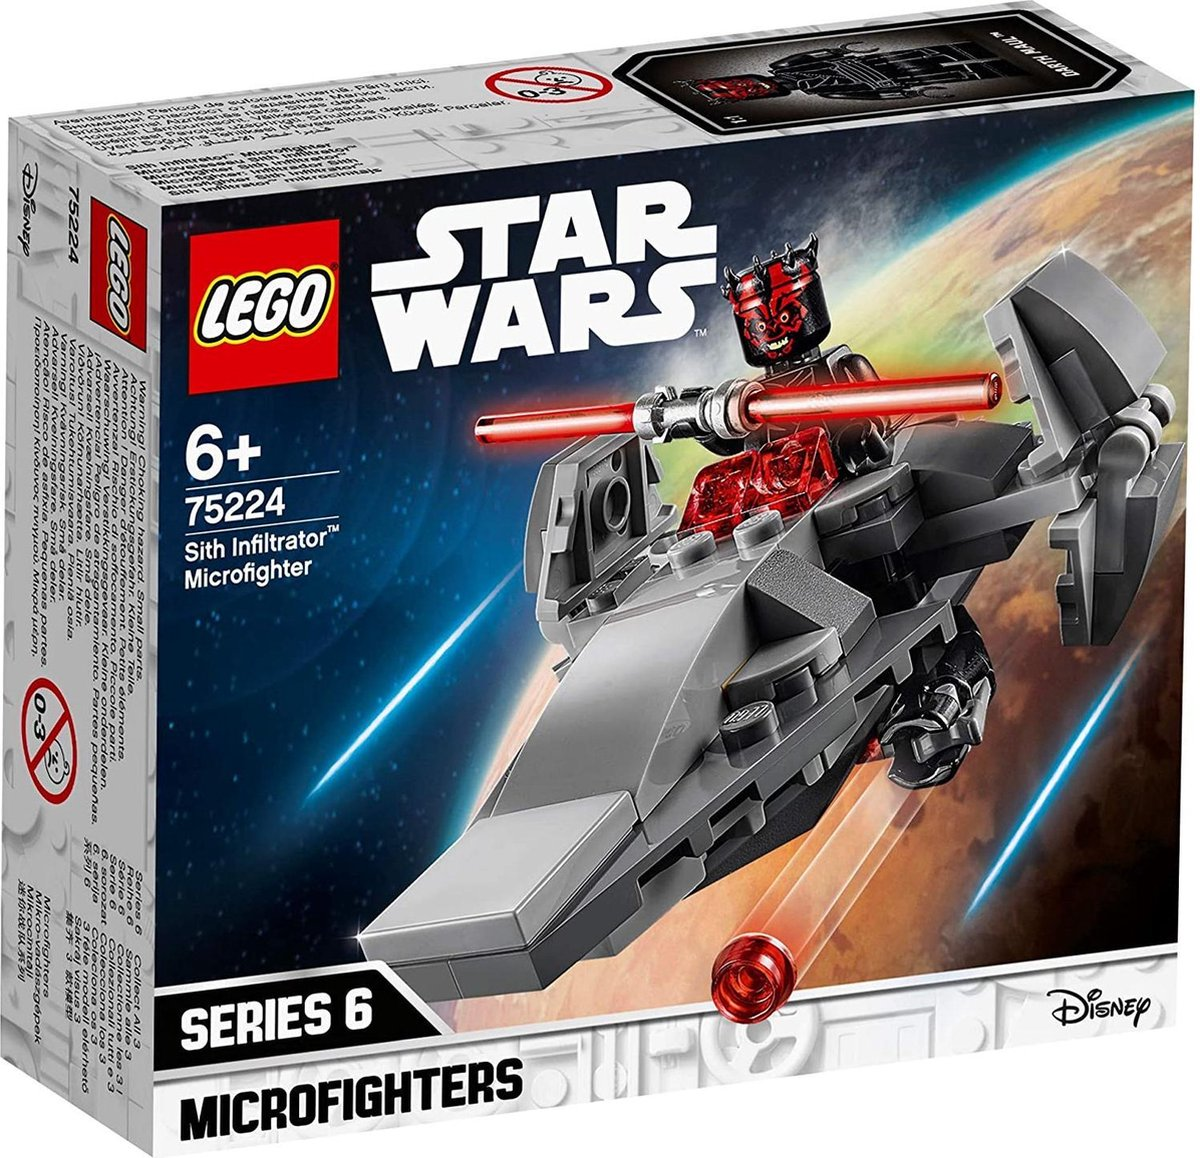 LEGO 6251635 Star Wars Sith Infiltrator Microfighter - 75224